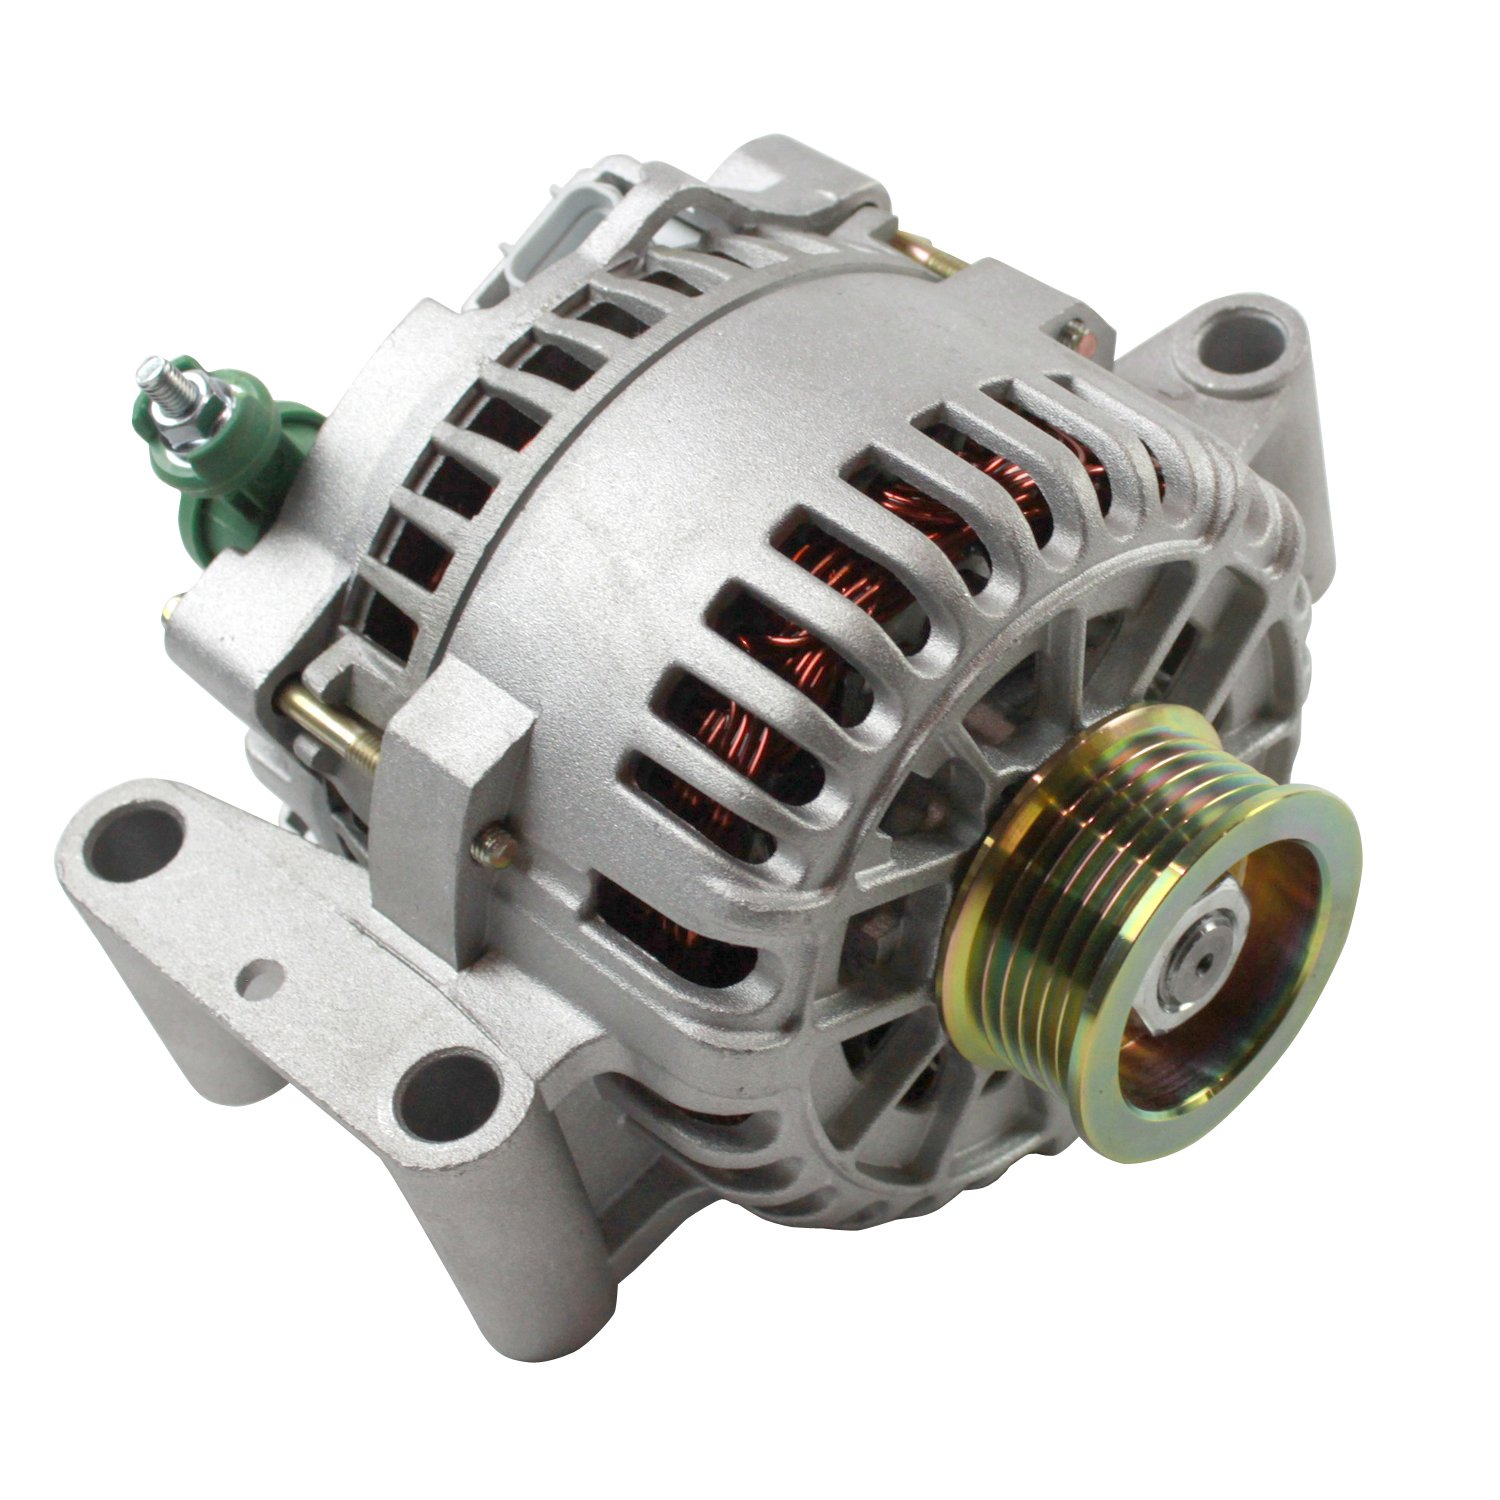 TYC 2-08406 Replacement Alternator for Ford Focus Genera Corporation